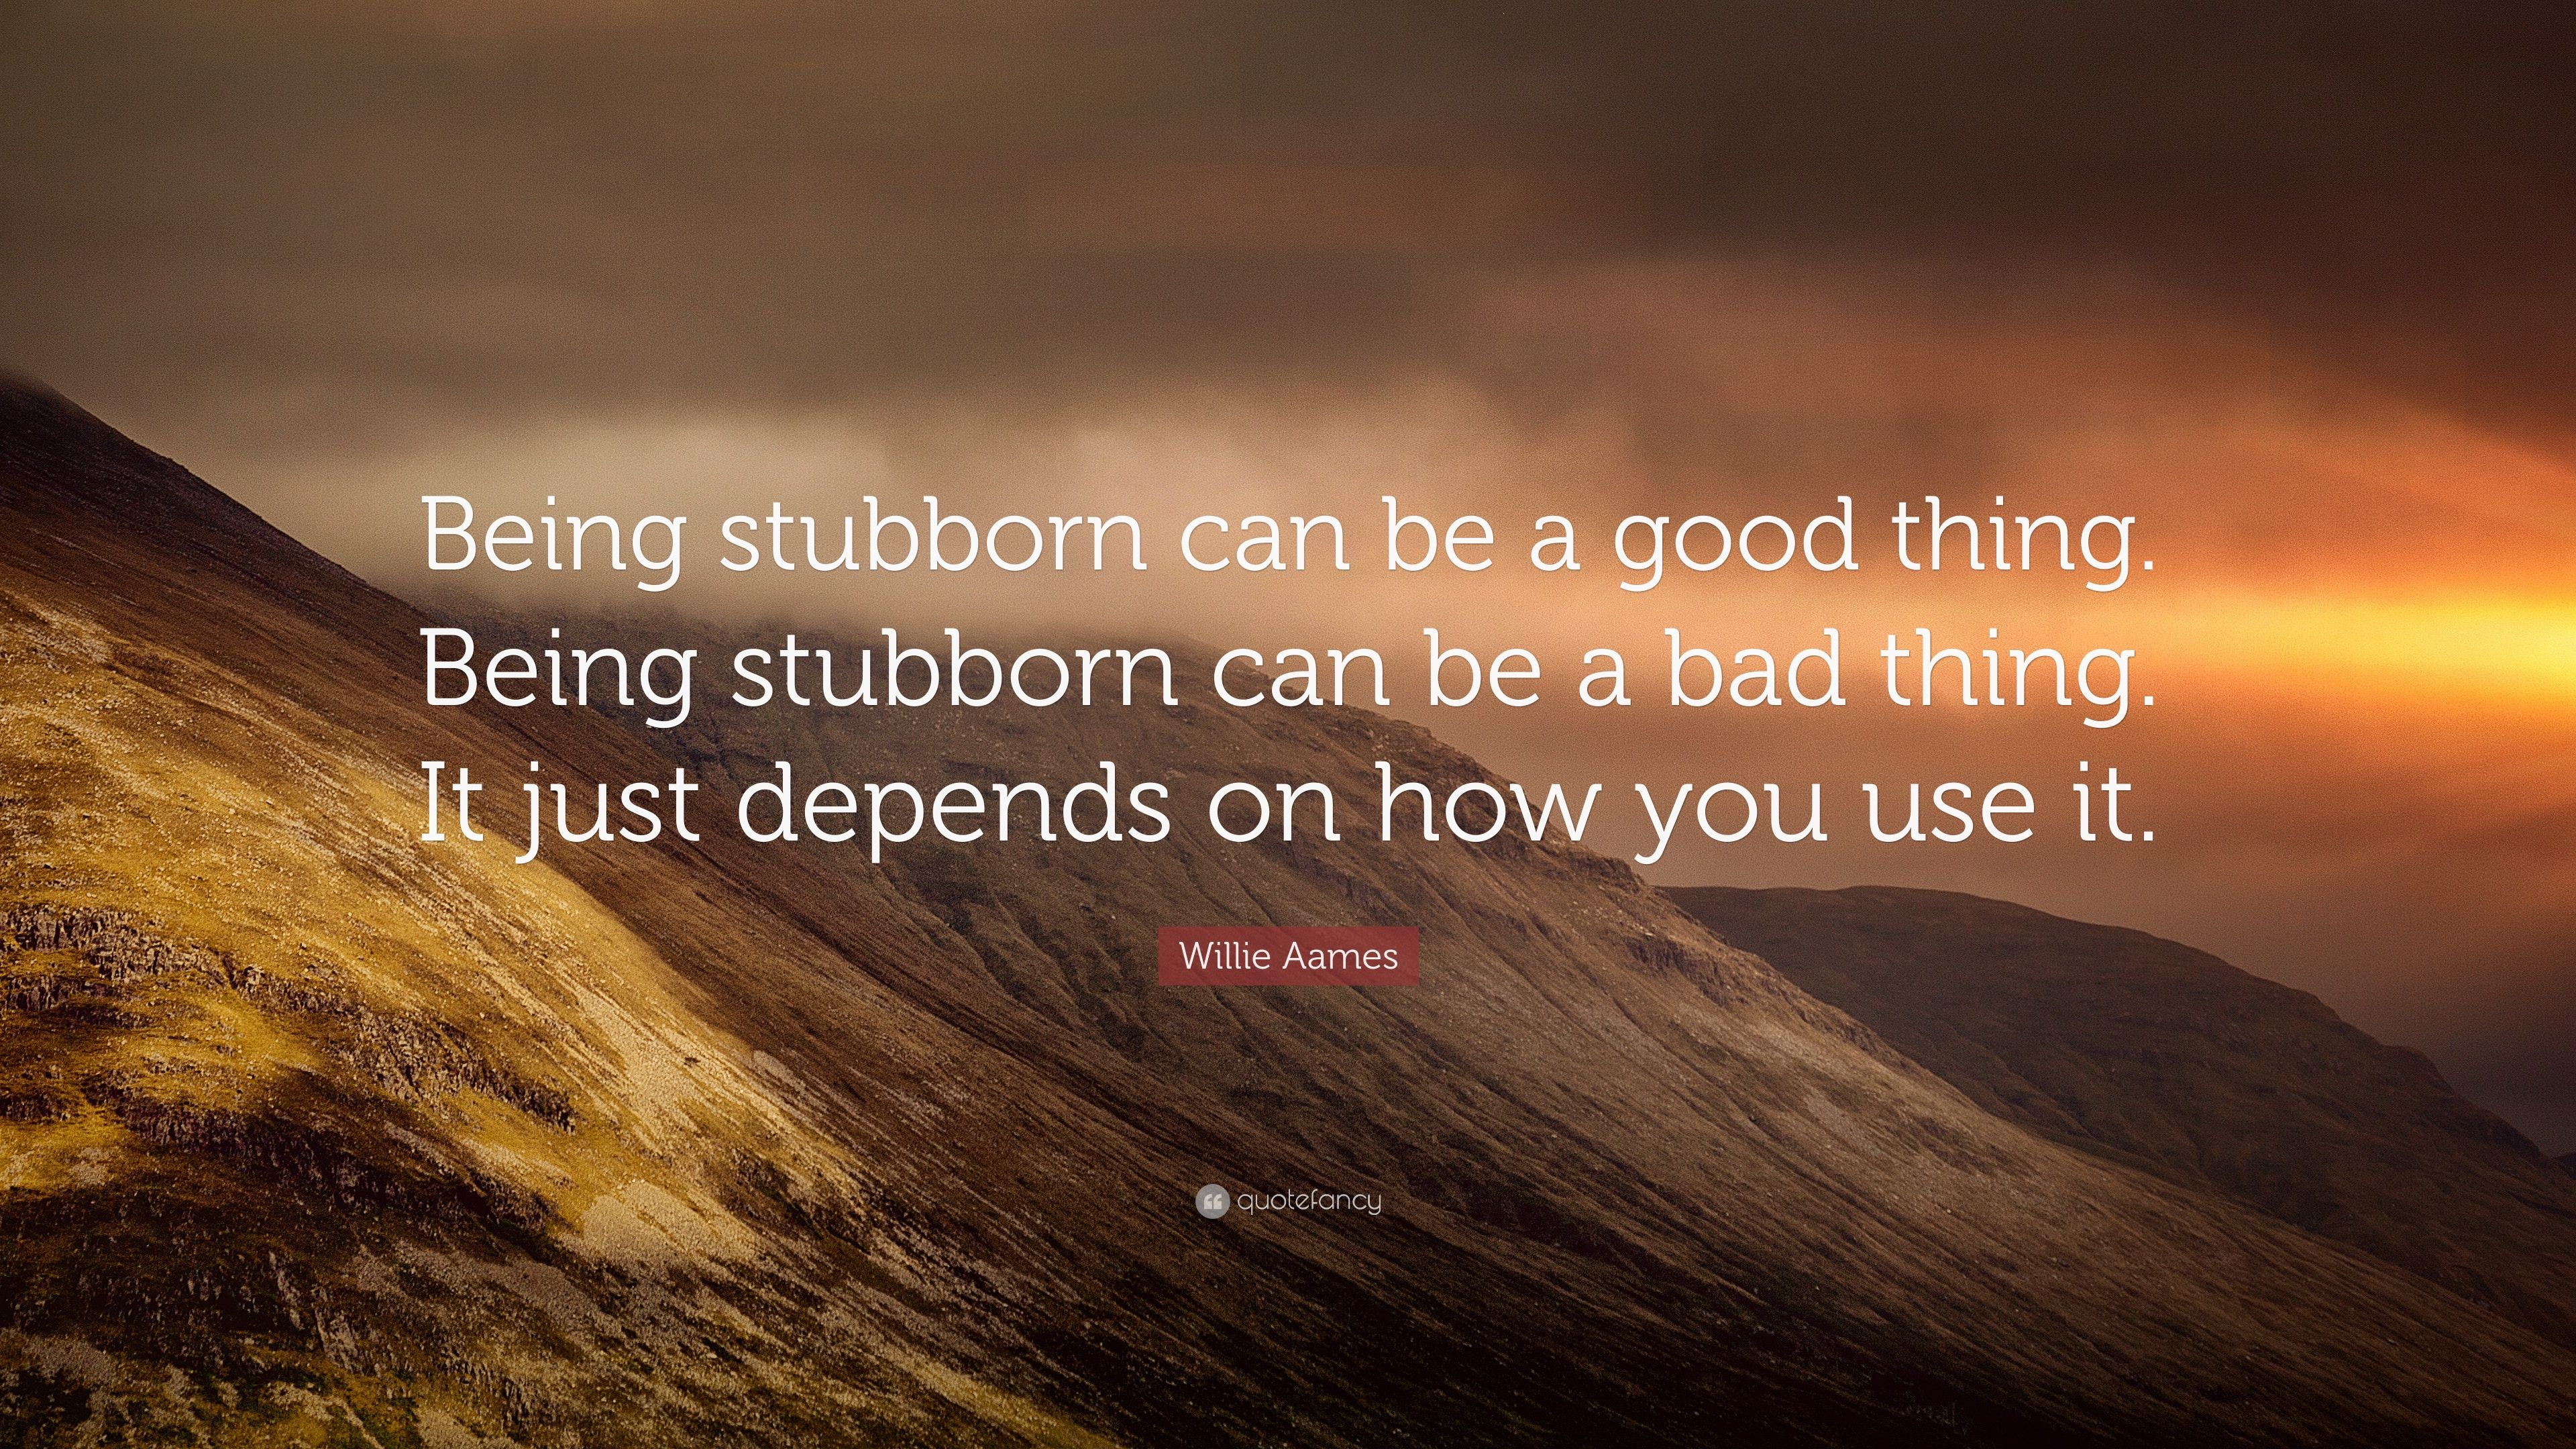 Is being stubborn a bad thing